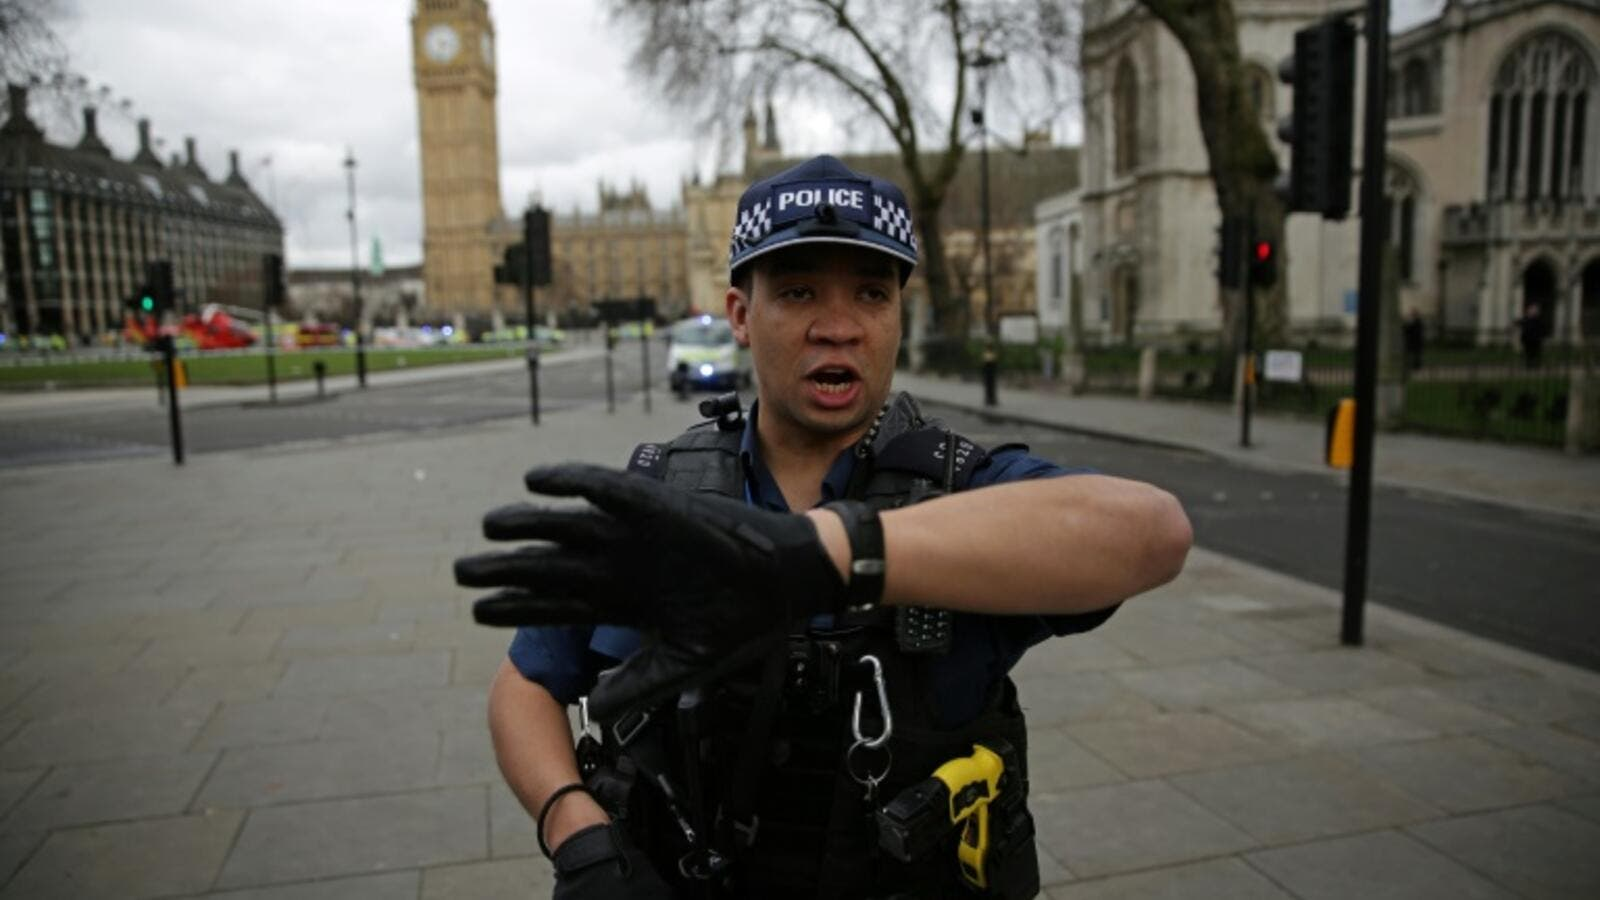 An armed police officer stands guard in Parliament Square, opposite the Houses of Parliament in central London. (AFP/Daniel Leal-Olivas)